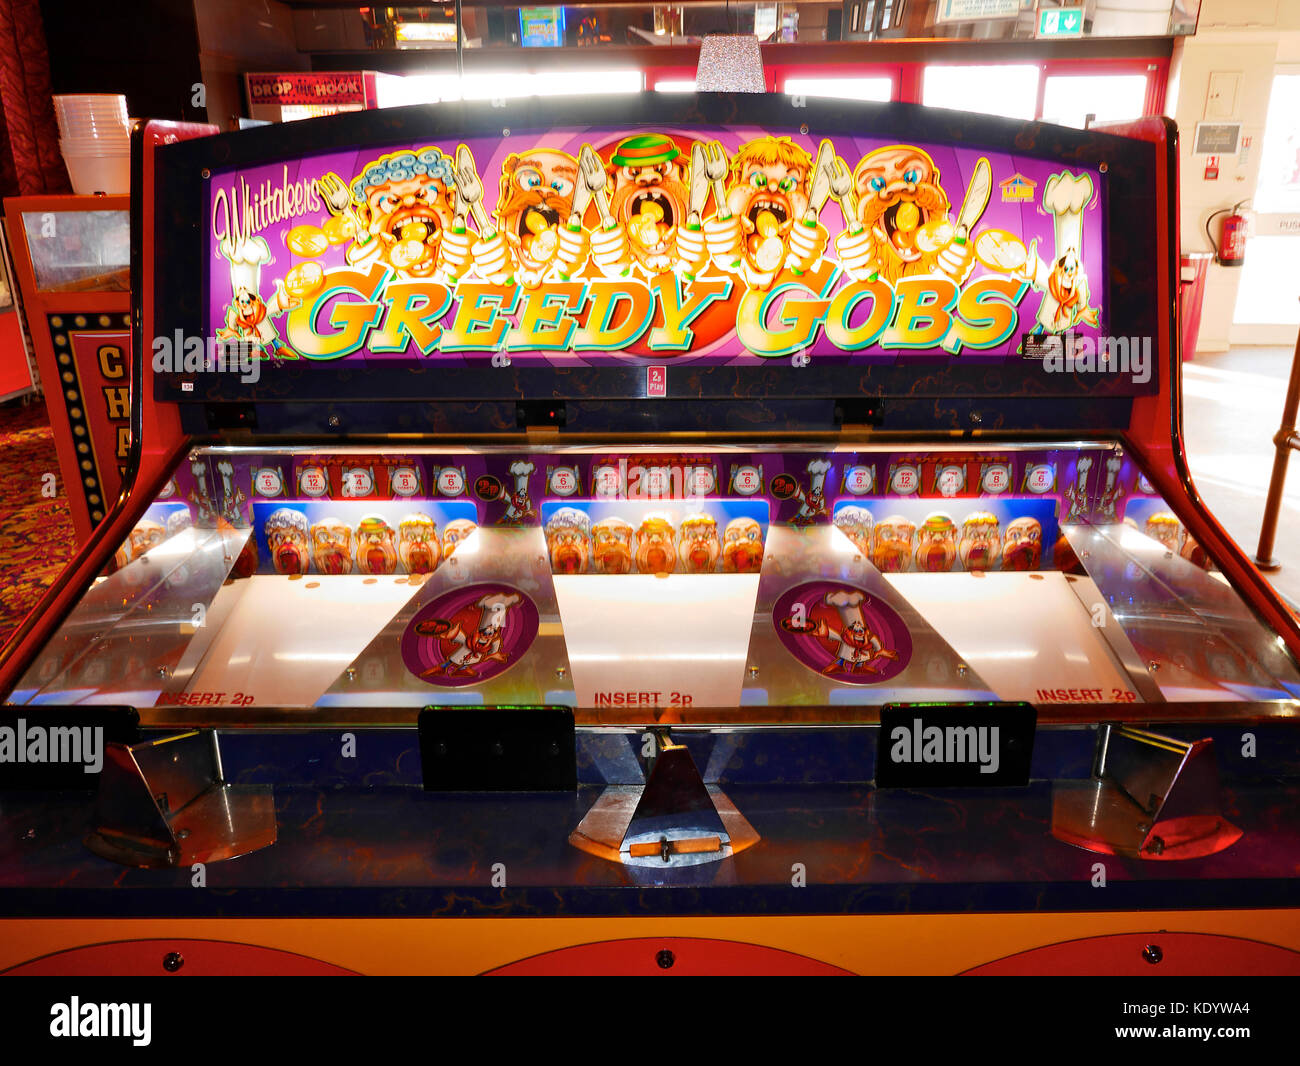 Greedy gobs penny slot machine in gaming arcade Stock Photo